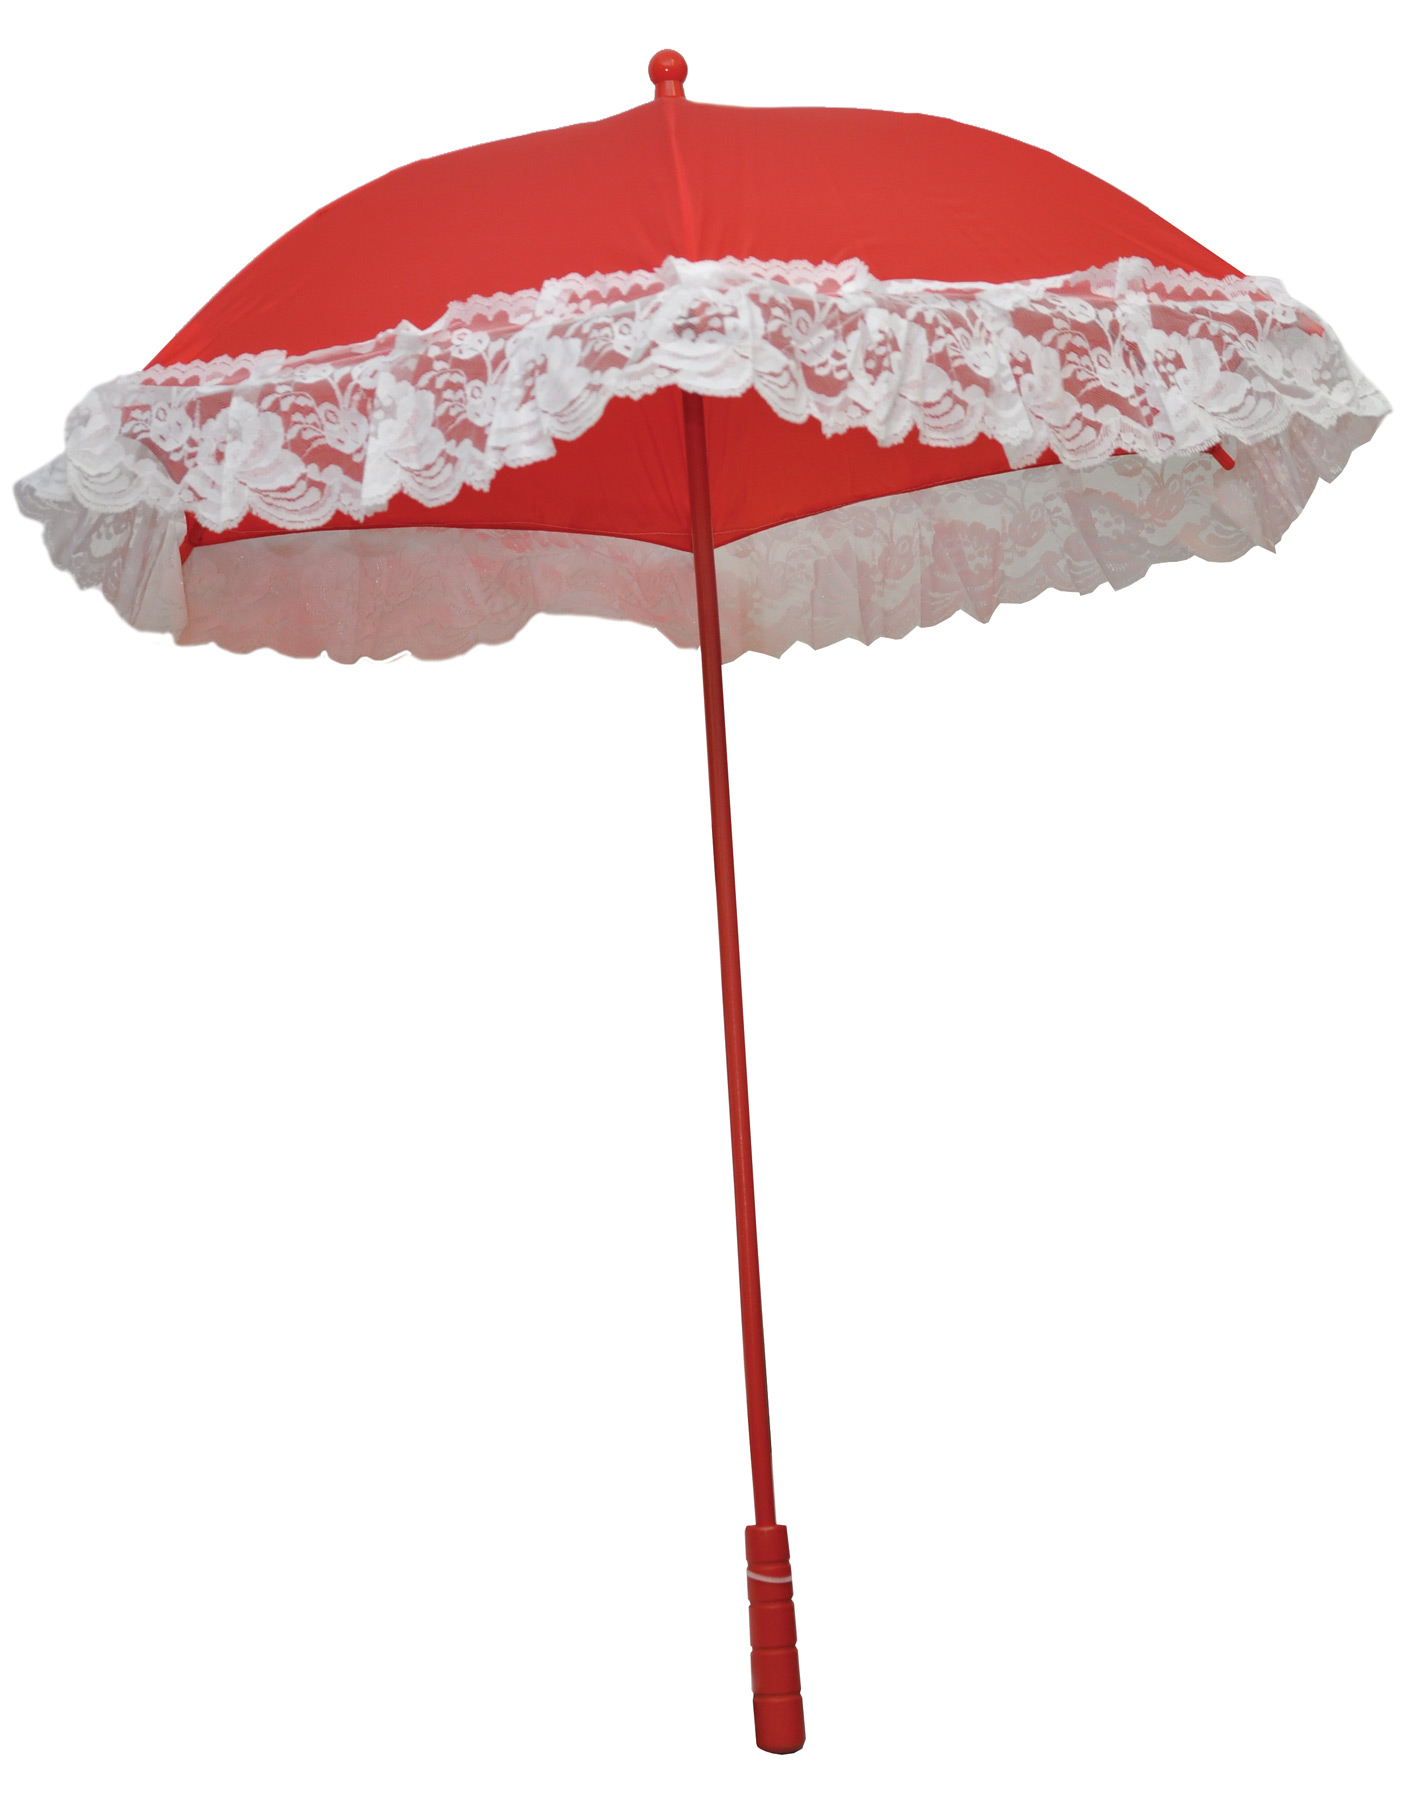 Featured Image for 25″ Nylon Parasol with Ruffle